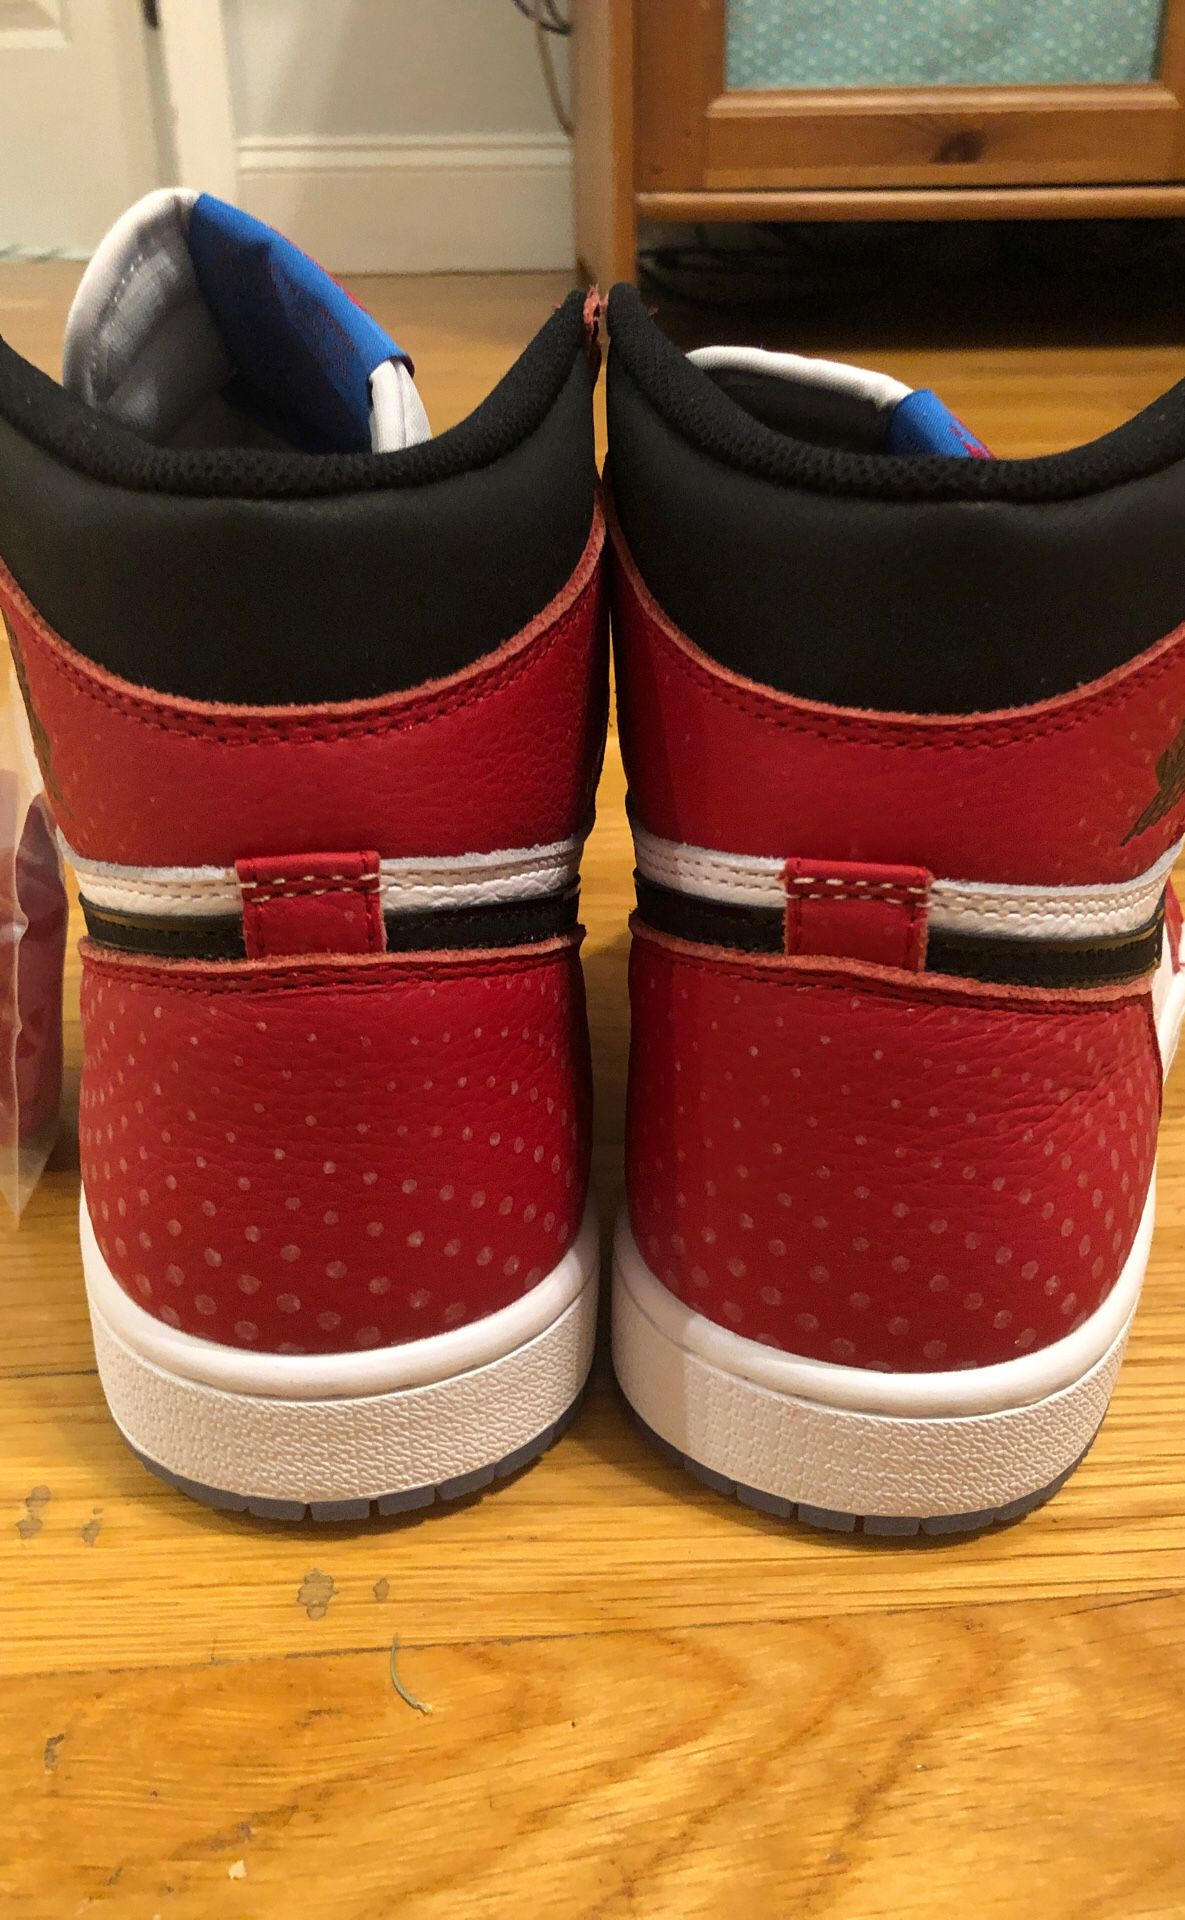 Jordan 1 Spider-Man with special box (deadstock)